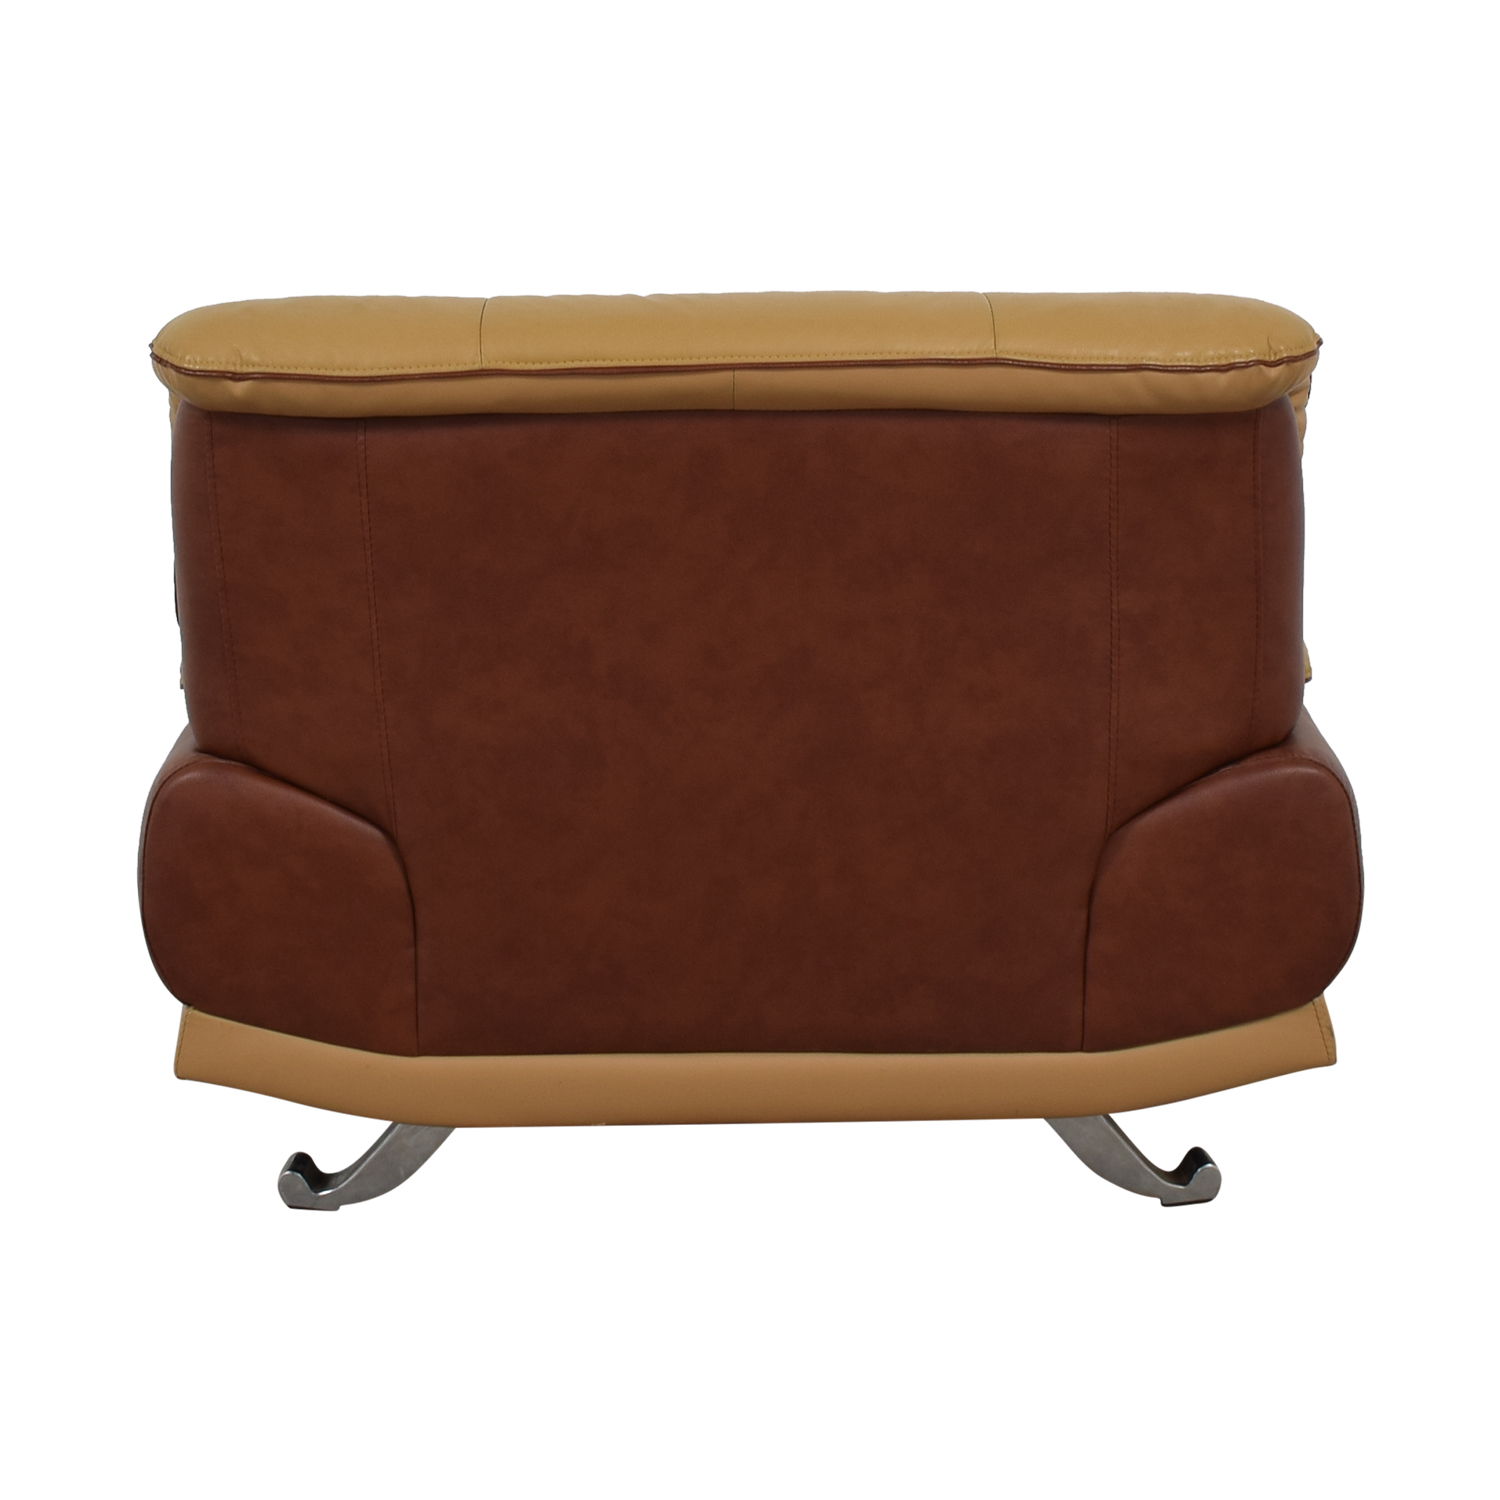 buy AE Furniture Brown and Tan Accent Chair AE Furniture Chairs